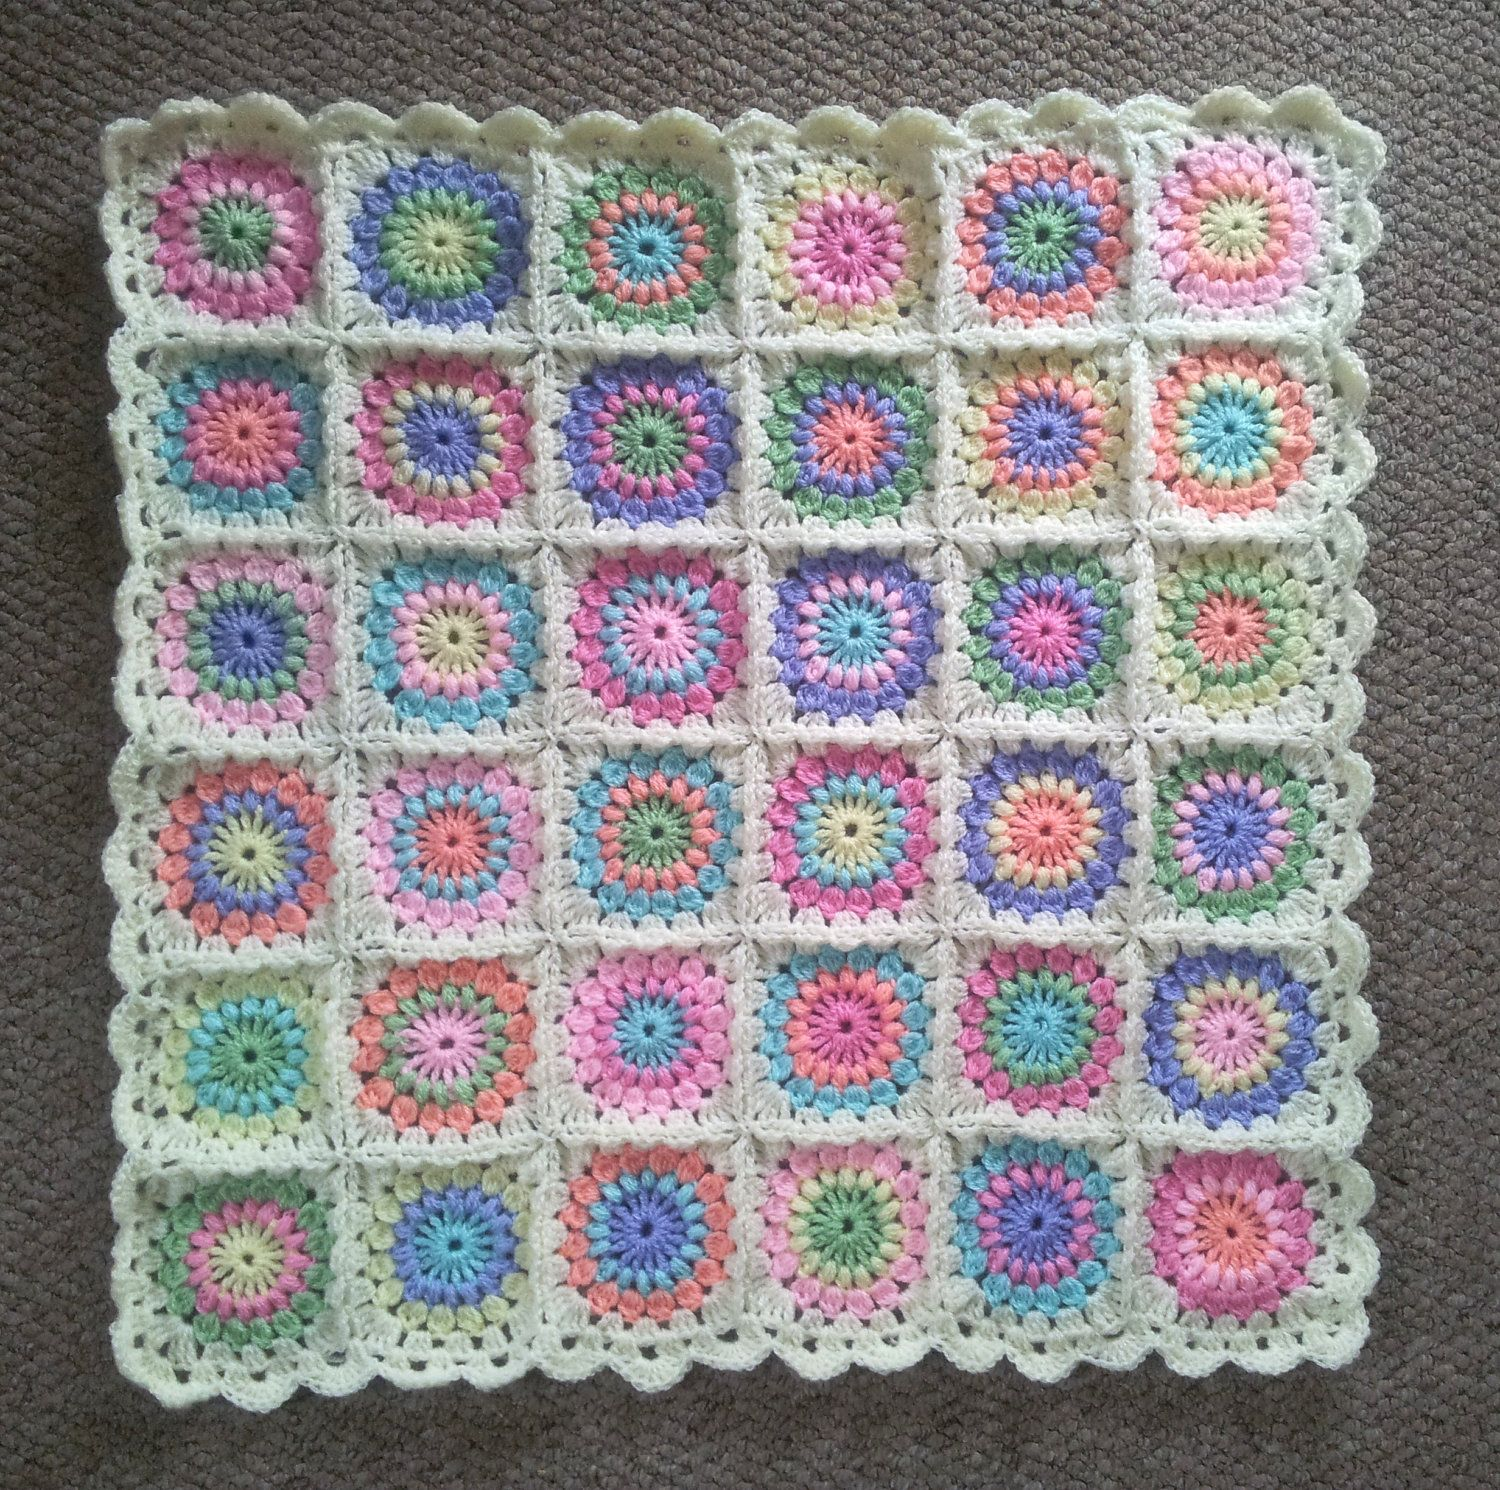 Free Crochet Patterns Baby Skirt : Crochet baby blanket patterns free Baby Blankets ...